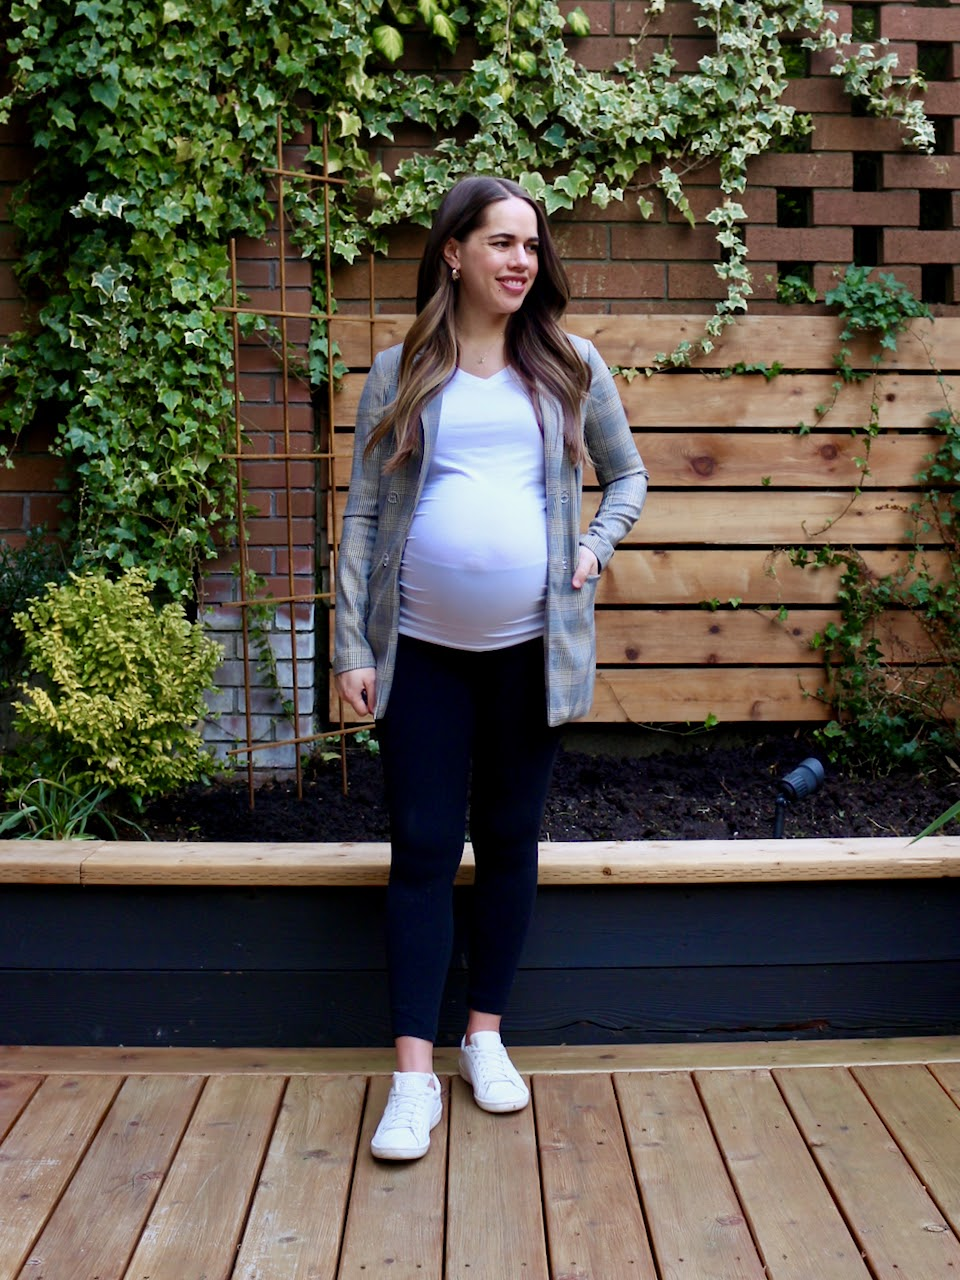 Jules in Flats - Leggings and T-Shirt Outfit with Blazer (Business Casual Workwear on a Budget)